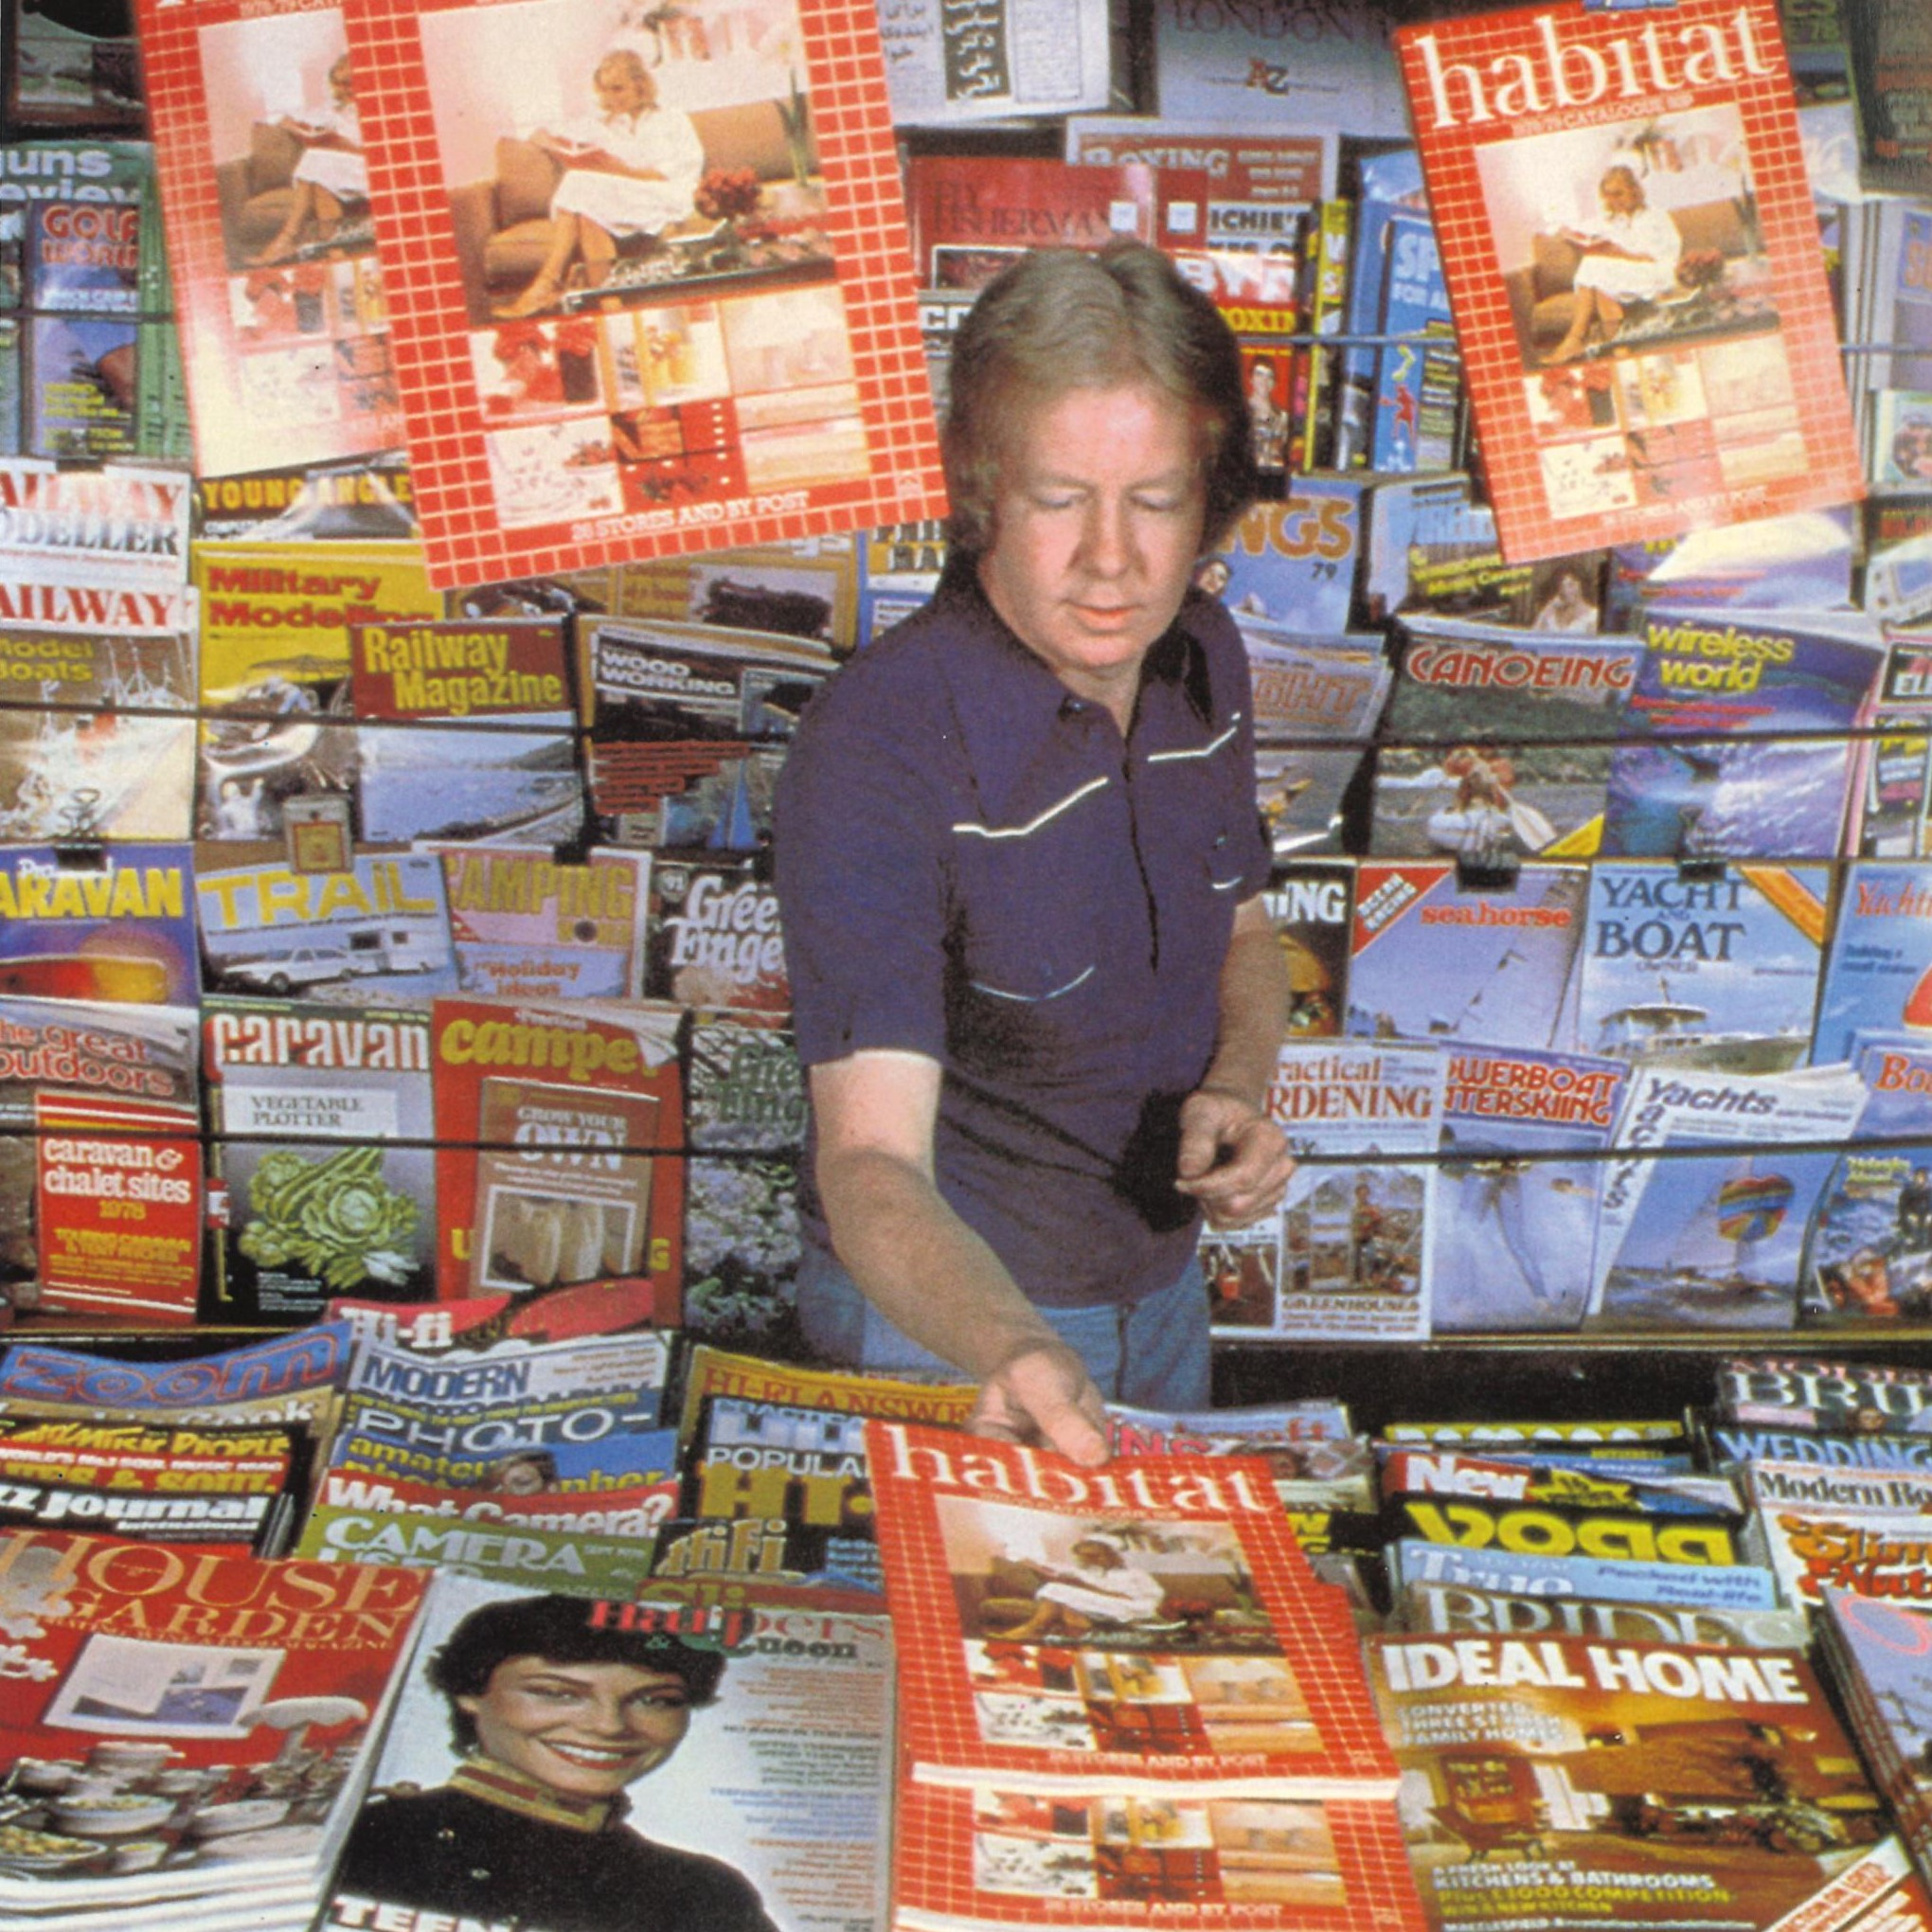 Habitat catalogues being sold on UK newsstands and branches of WHSmith. Source: My Life In Design | About Us 1960s & 70s